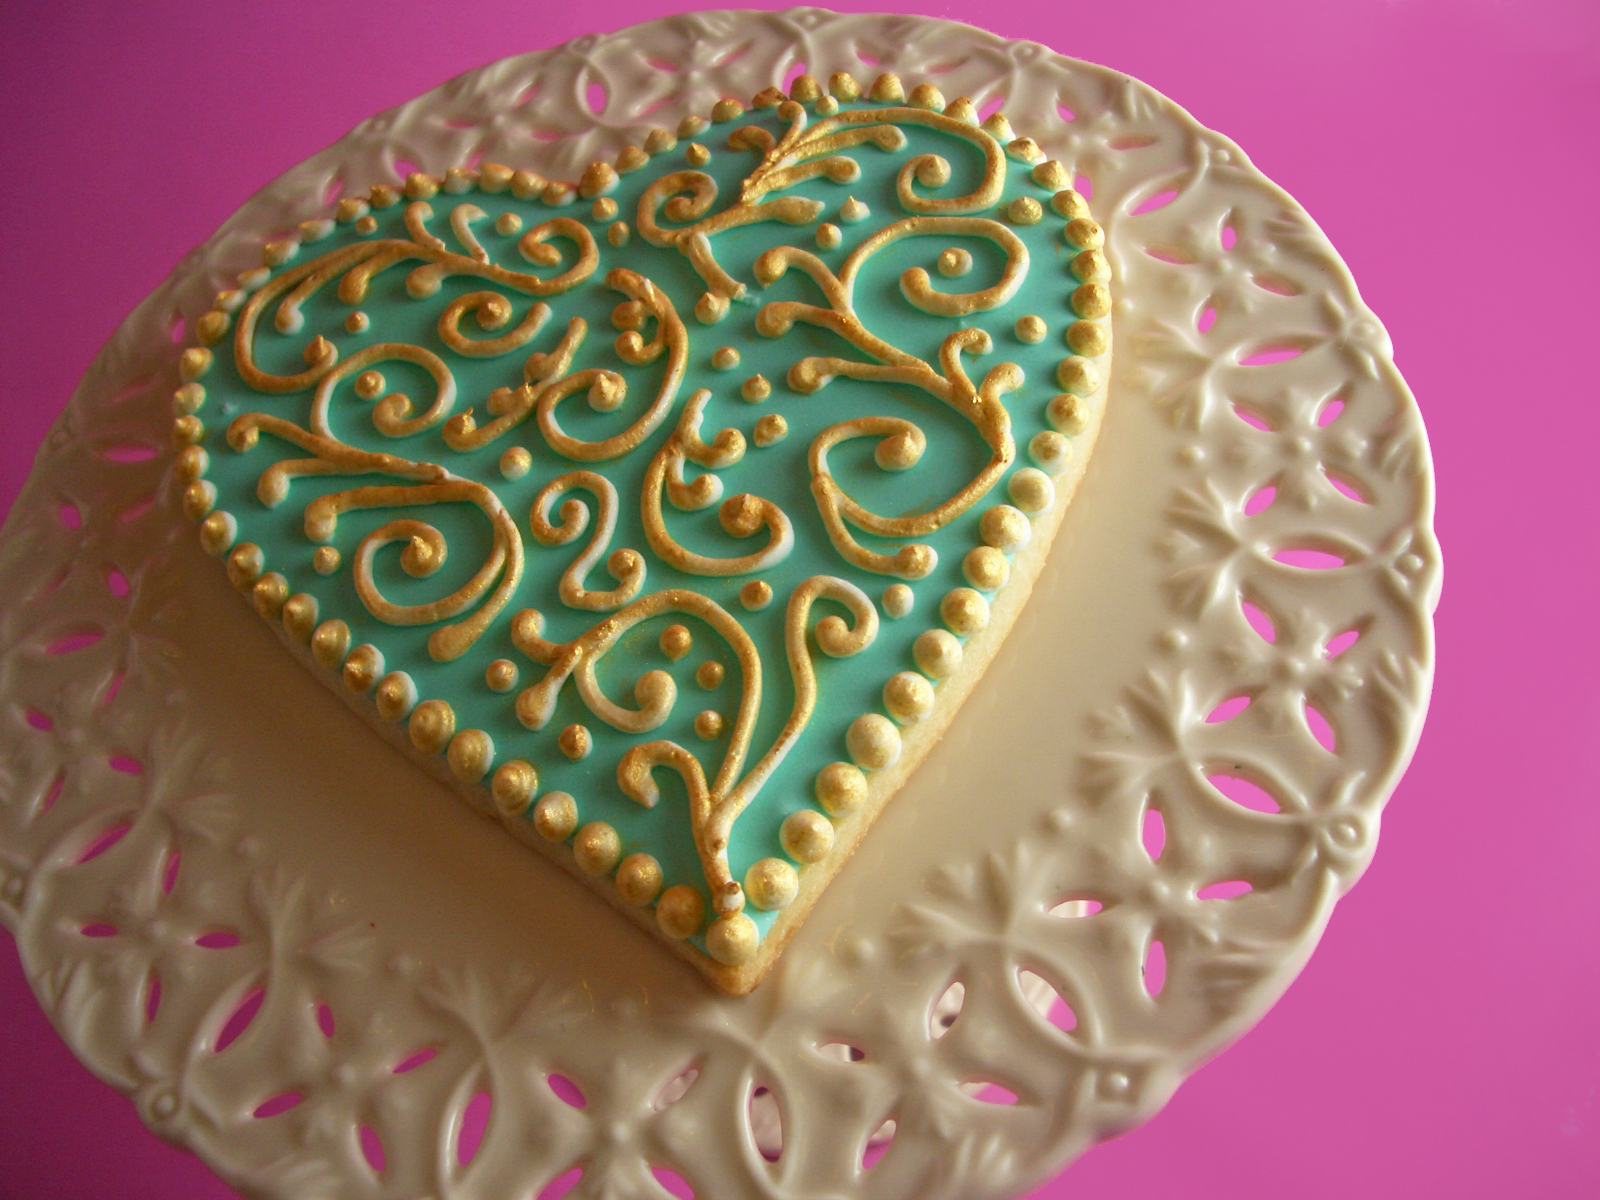 Gilded Heart Sugar Cookies Goodies By Anna